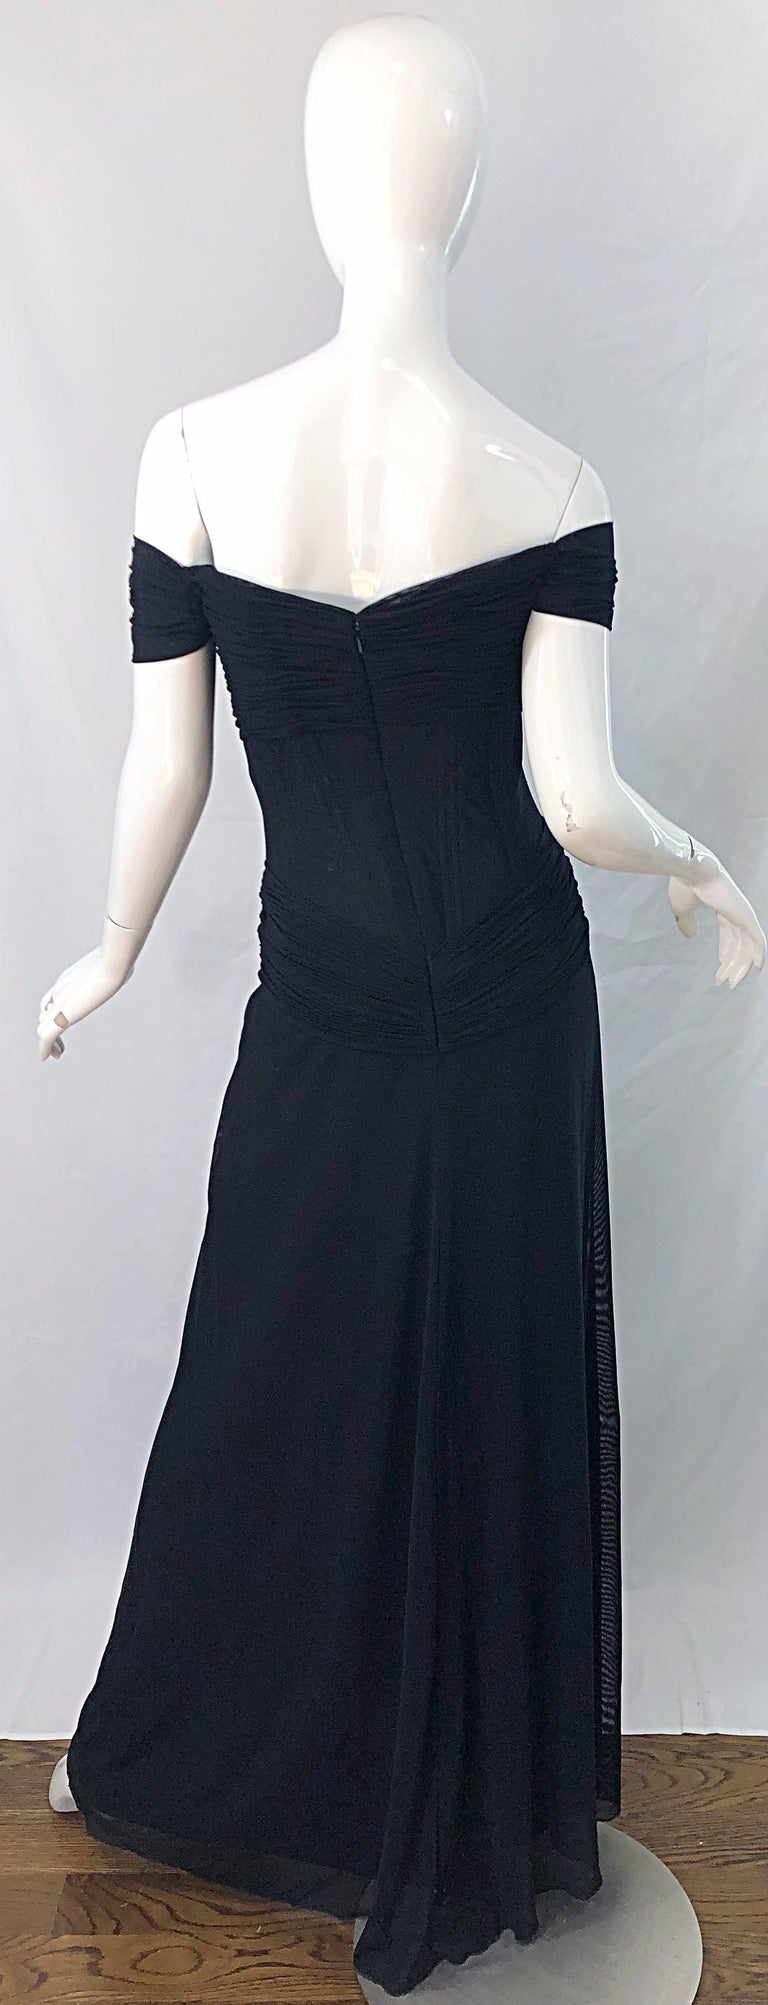 Julia Roberts Pretty Woman Vintage Vicky Tiel Couture Sz 12 Black 1980s Gown For Sale 11